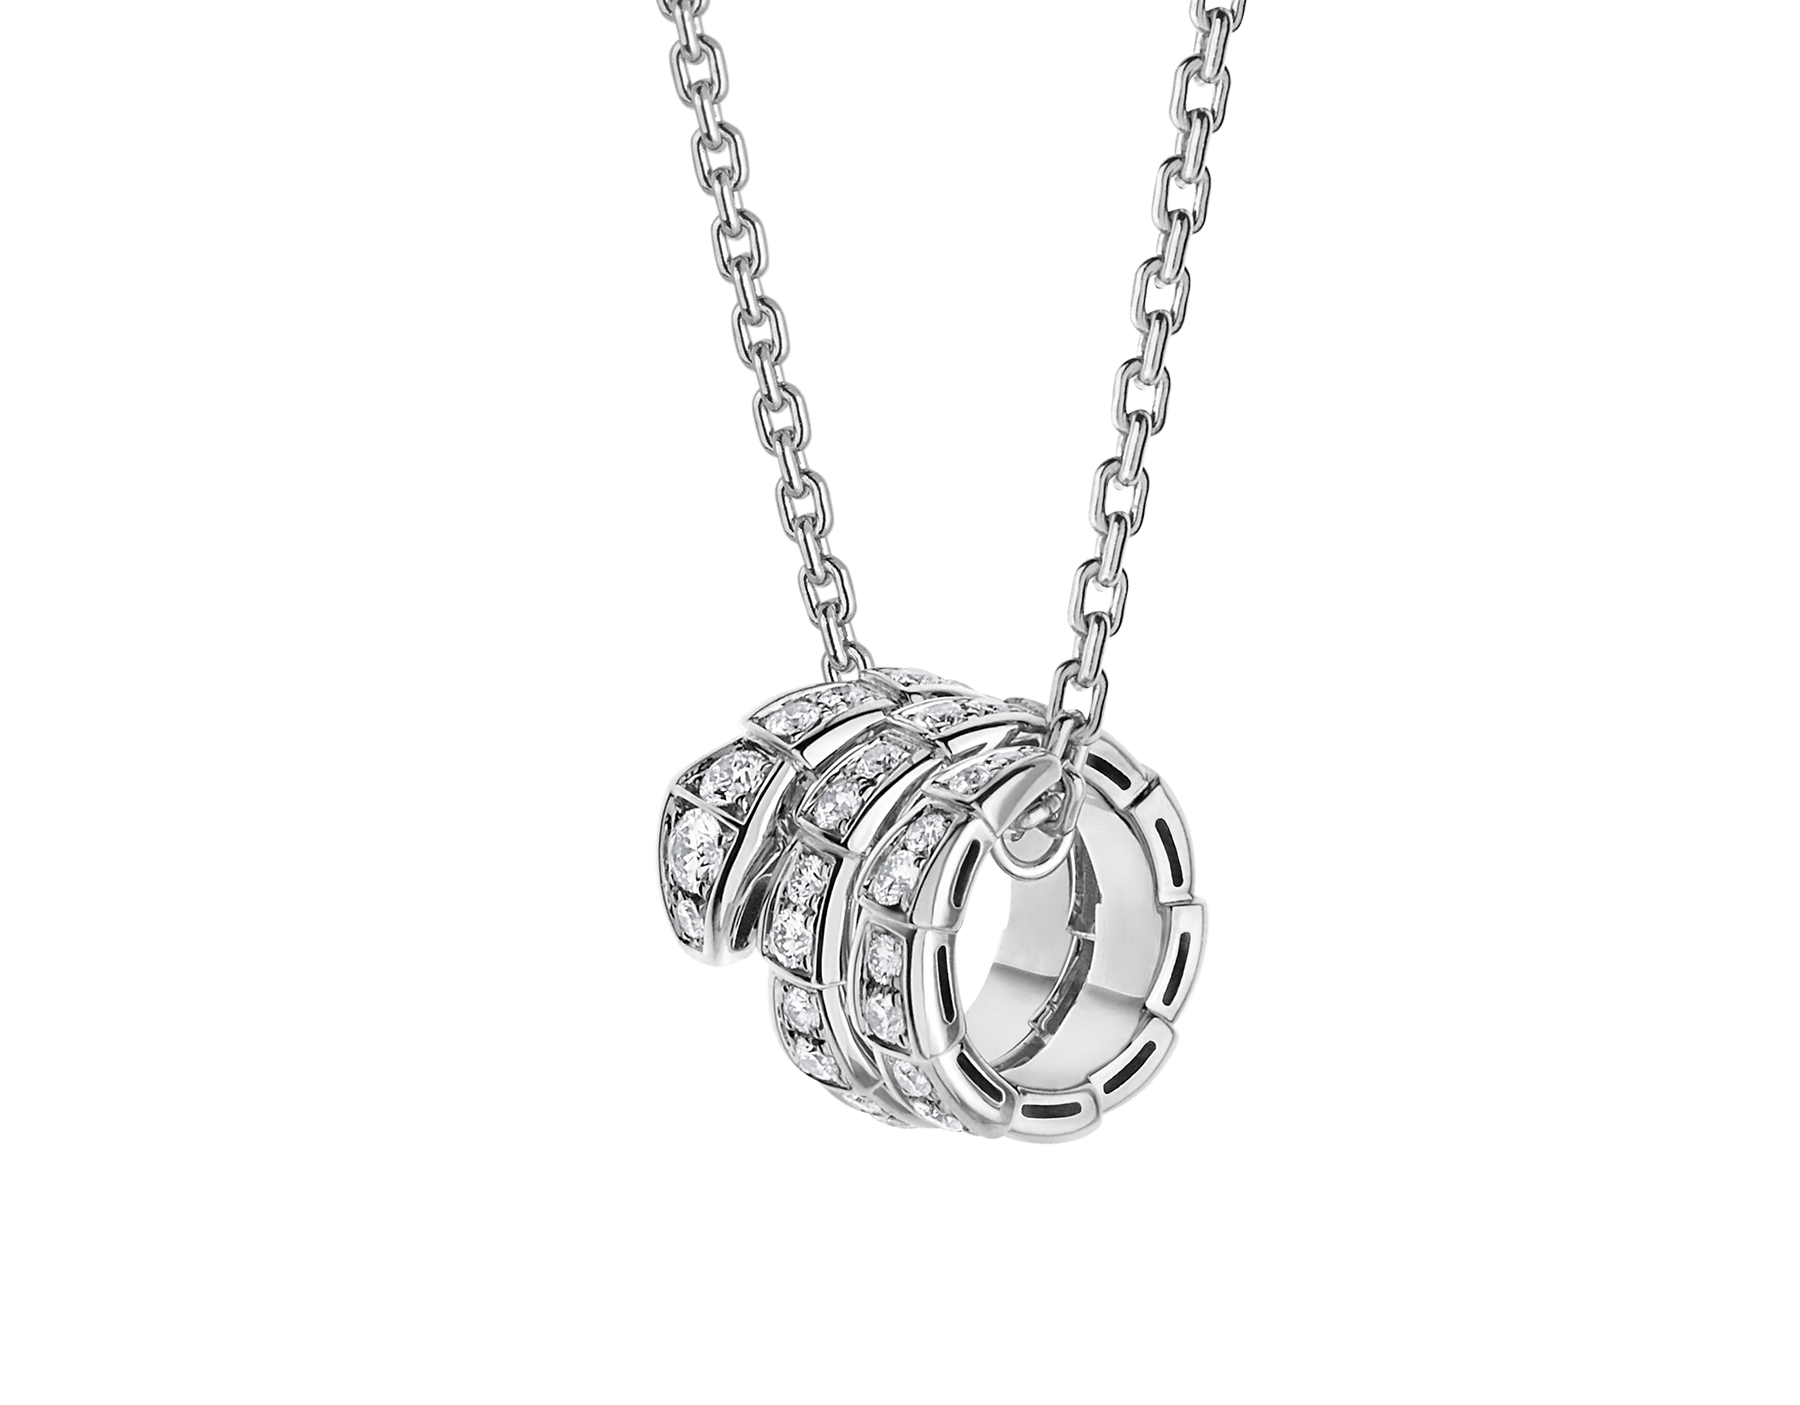 Serpenti Viper pendant necklace in 18 kt white gold set with pavé diamonds 357796 image 1